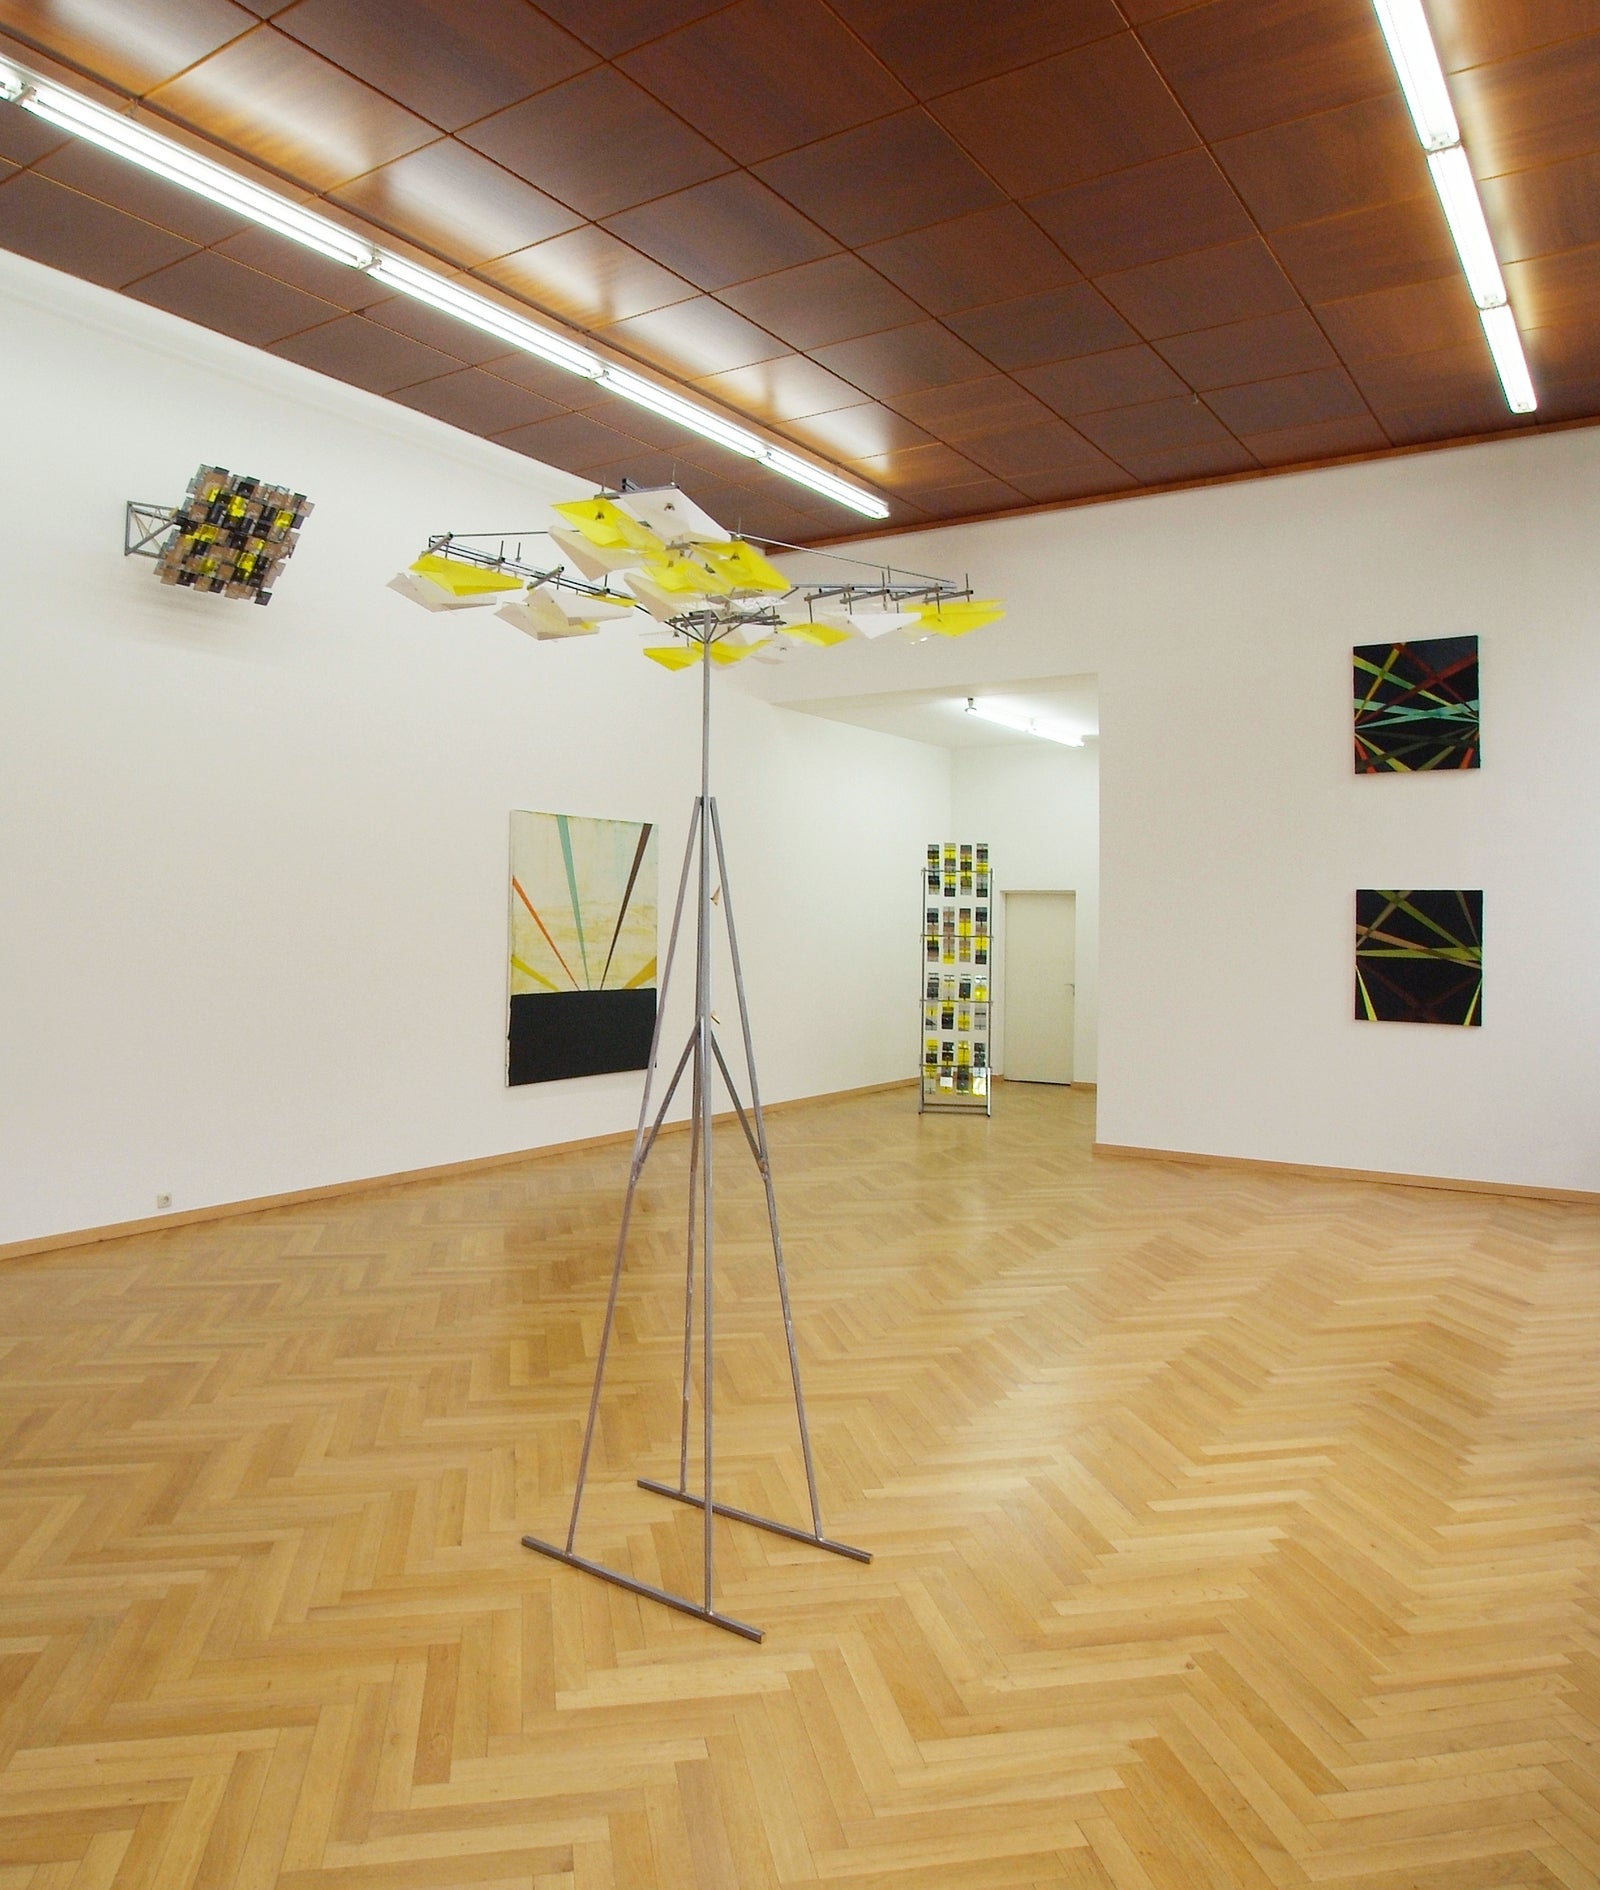 Distinction, Installation view, 2007, Galerie Michael Janssen, Cologne